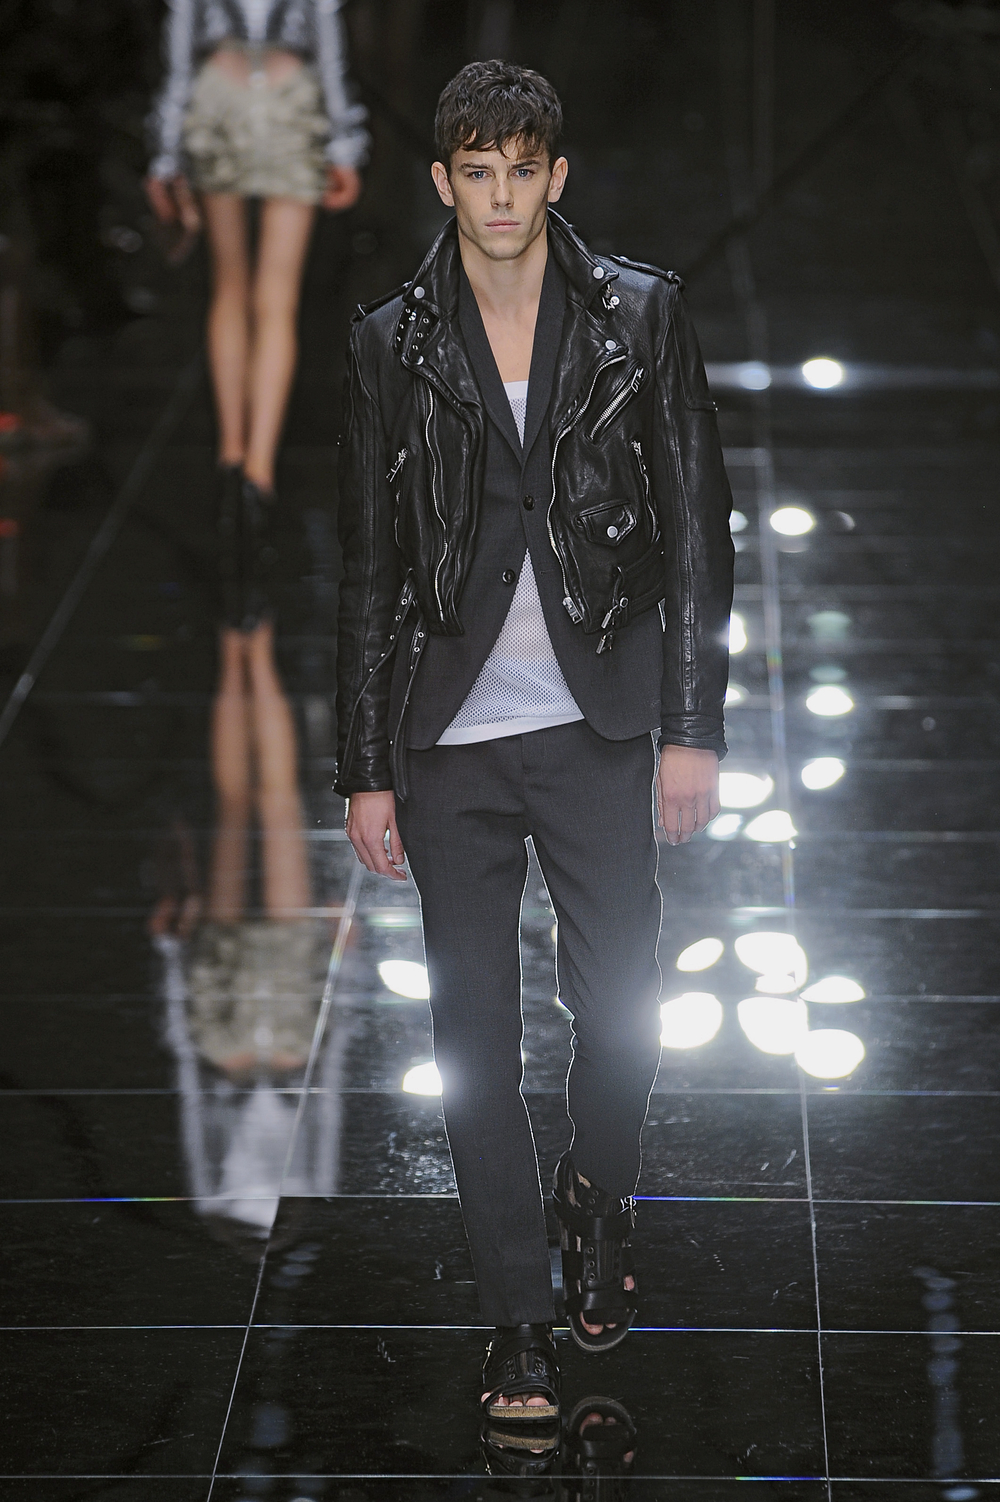 leather motorcycle jacket, care of Burberry Prorsum. Transient